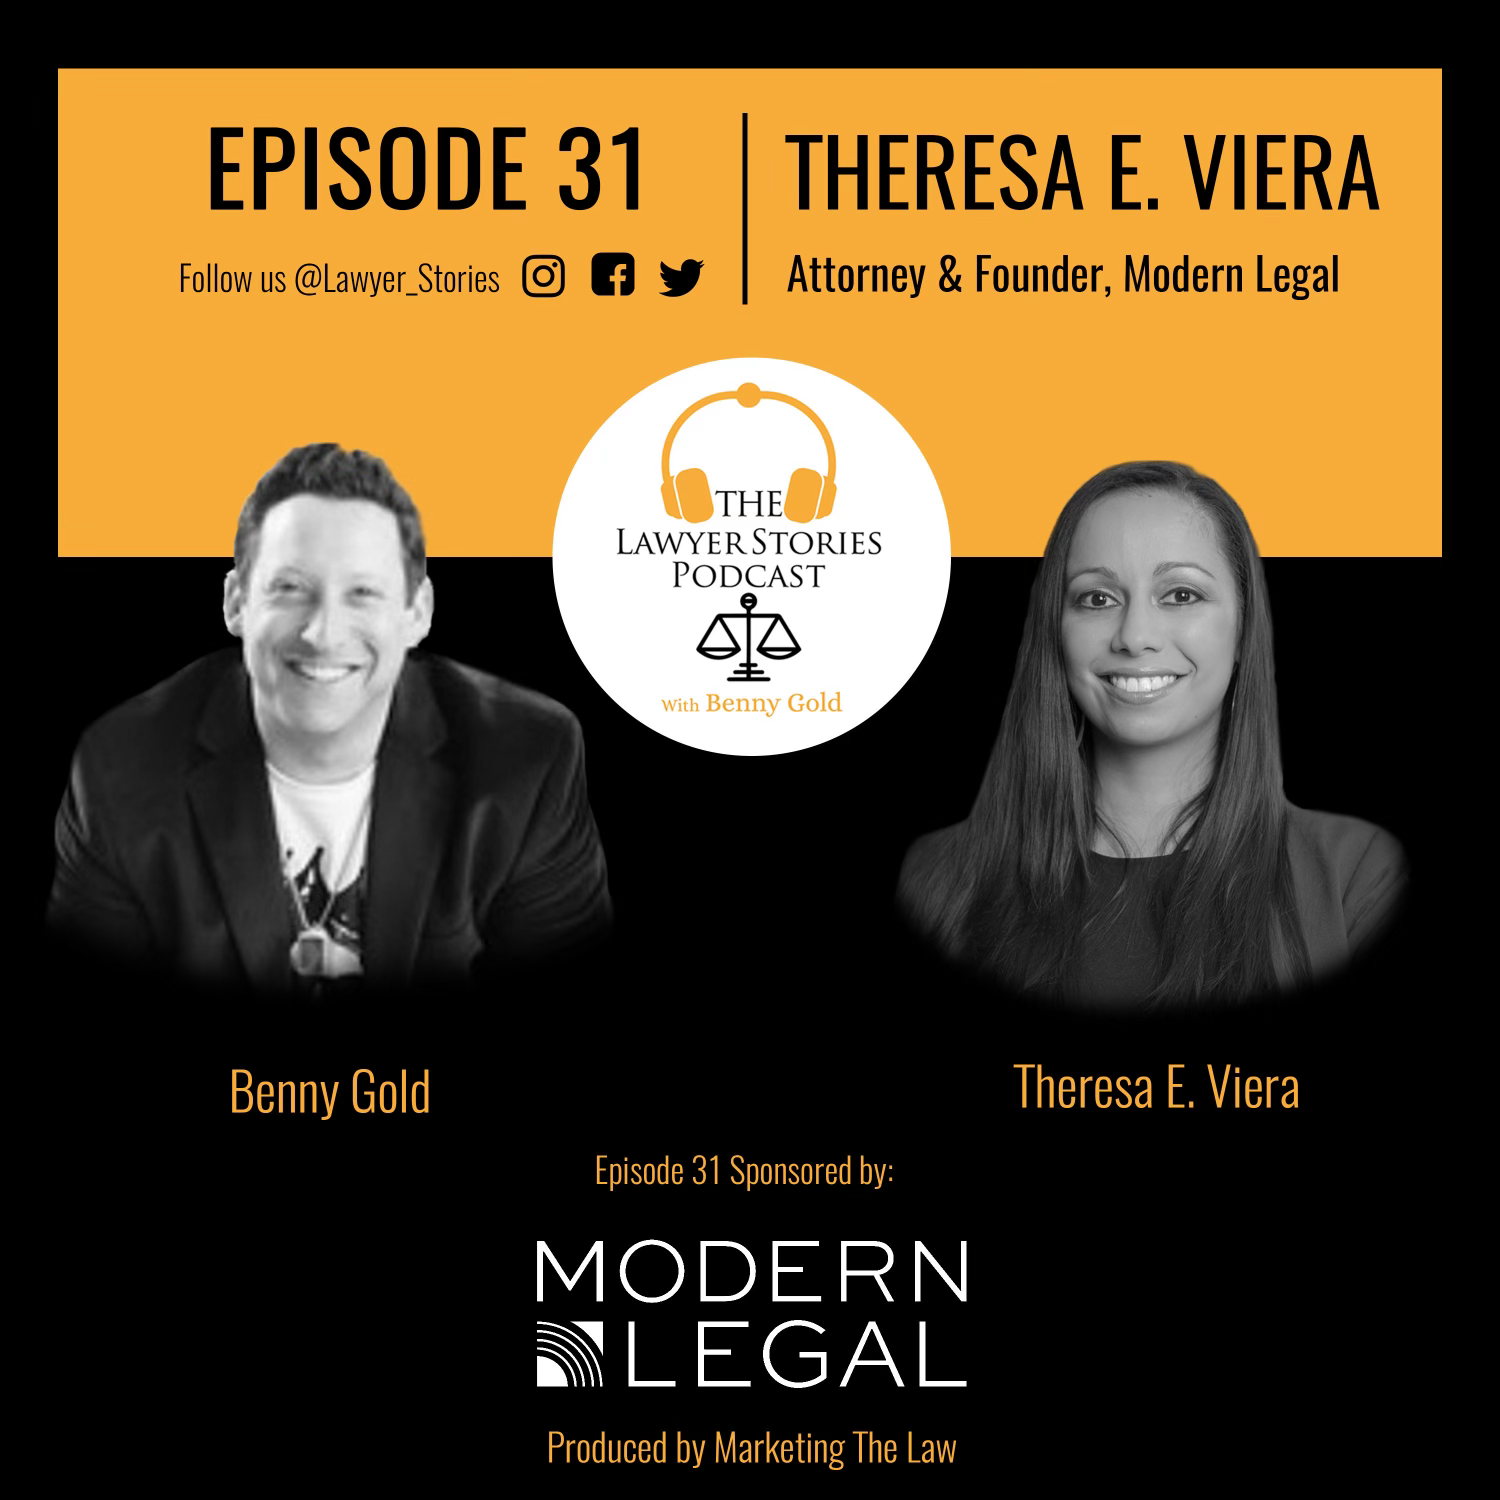 The Lawyer Stories Podcast Episode 31 featuring Theresa E. Viera